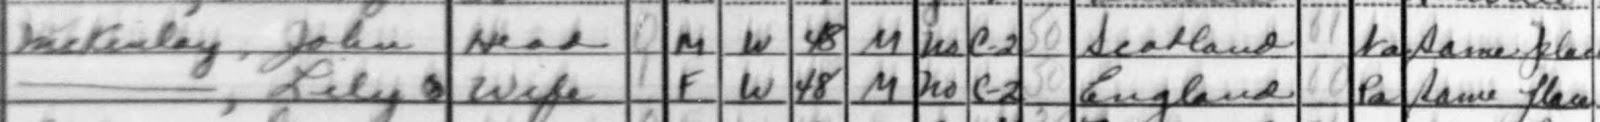 1940 U.S. census, Union County, New Jersey, population schedule, Elizabeth, enumeration district (ED) 23-90, sheet 4B, household 120, John McKinlay household; digital images, Ancestry.com(http://www.ancestry.com : accessed 9 Mar 2015); citing National Archives and Records Administration microfilm T627, roll 2400.